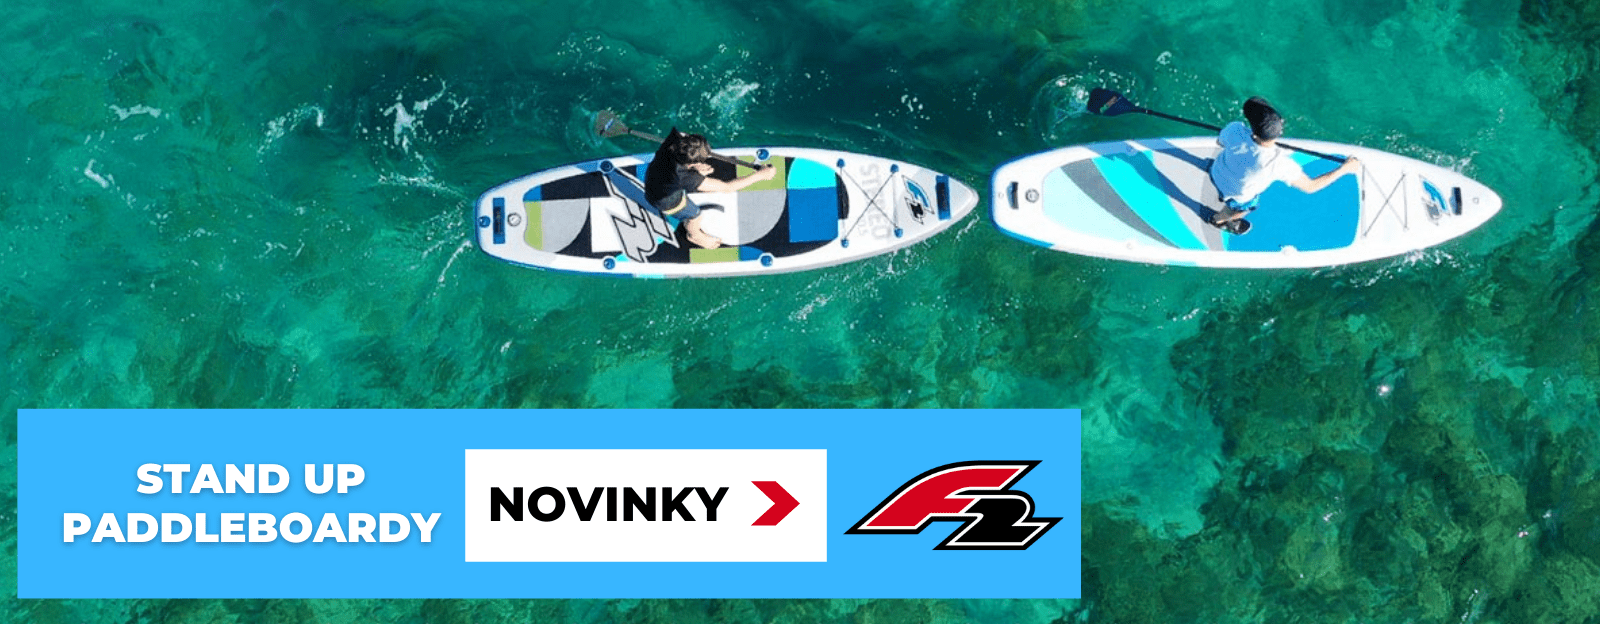 stand up paddleboardy F2